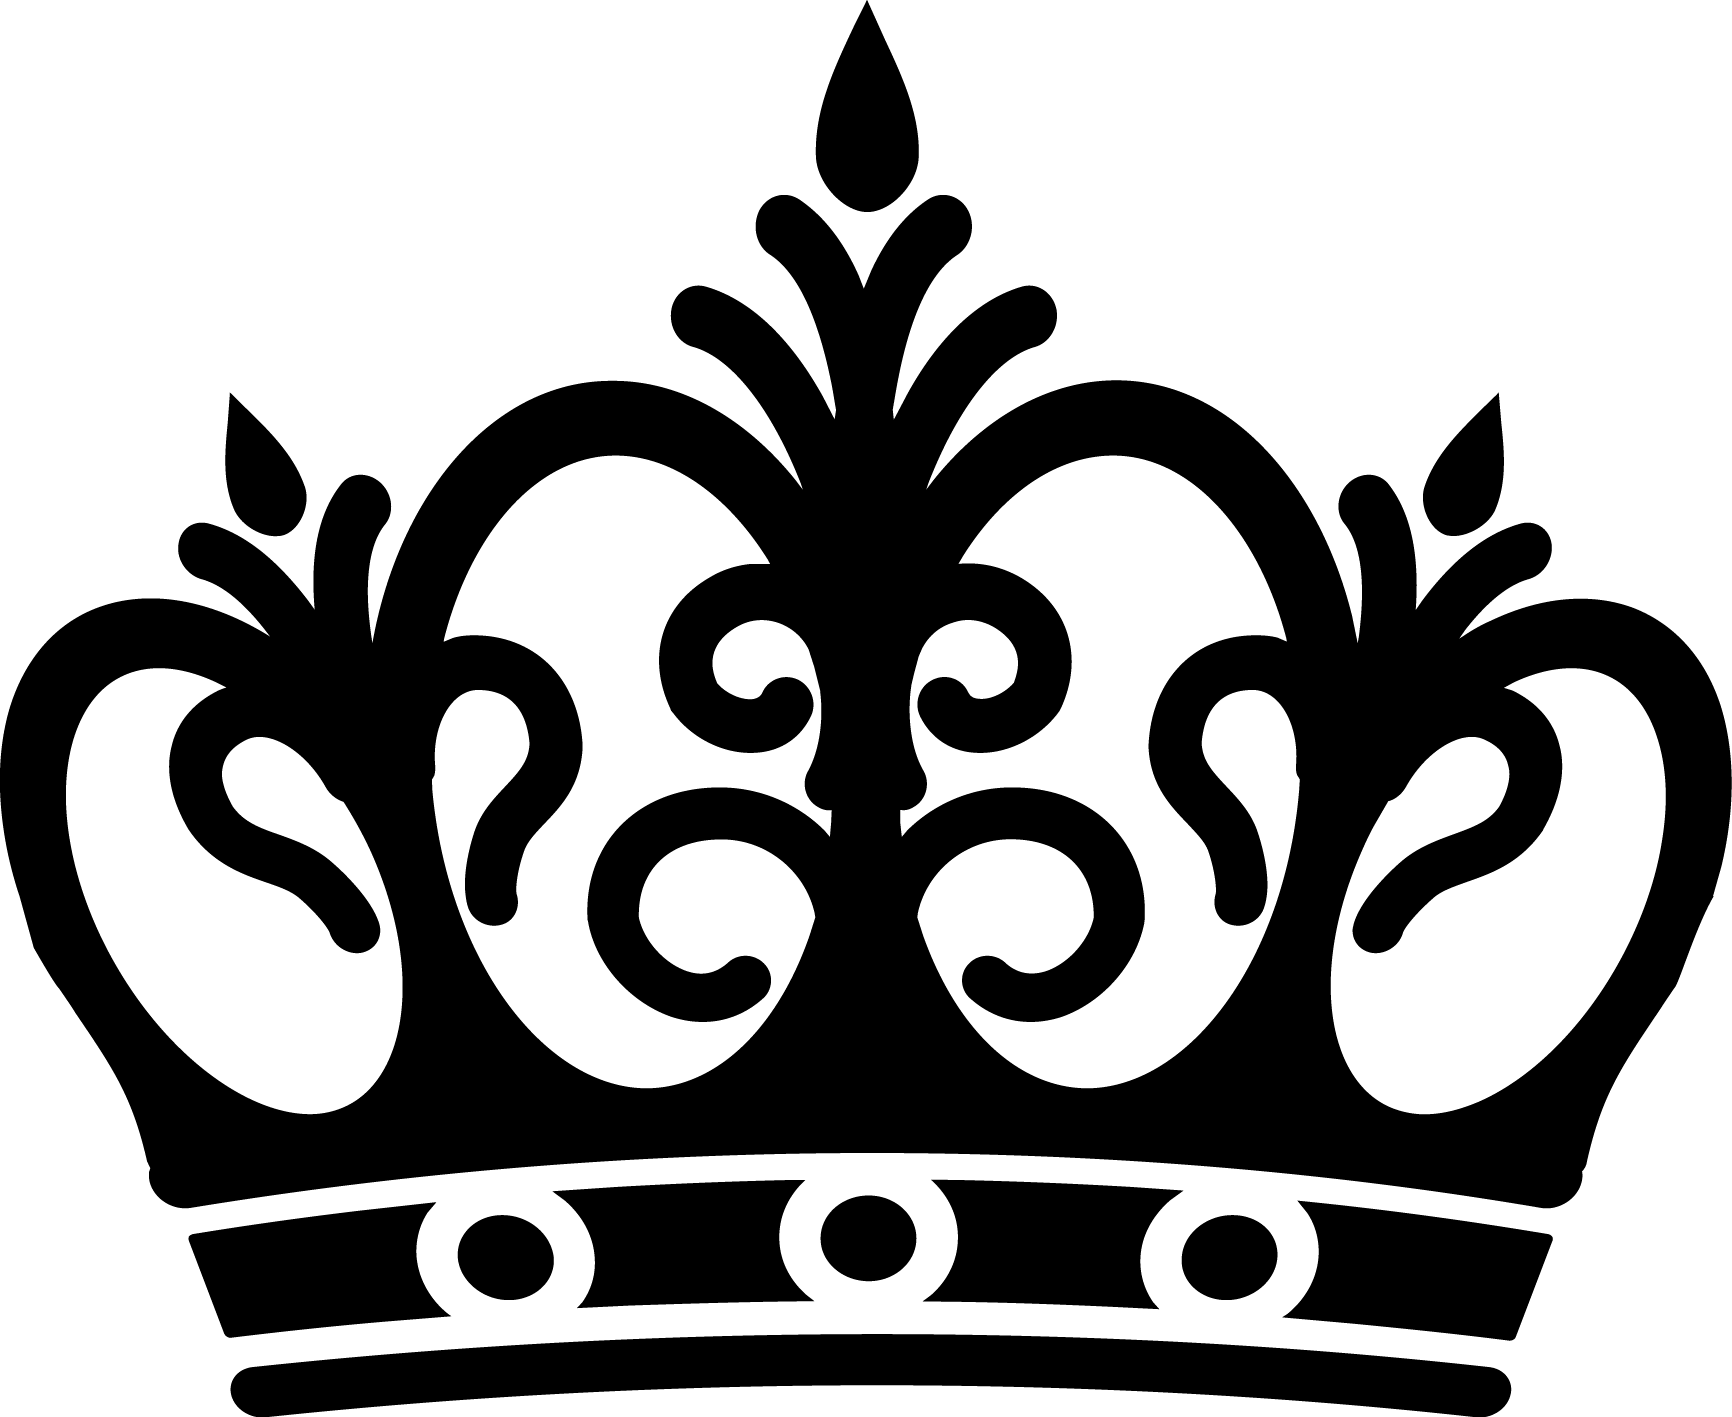 Black princess clipartfest and. Crown for a queen clipart